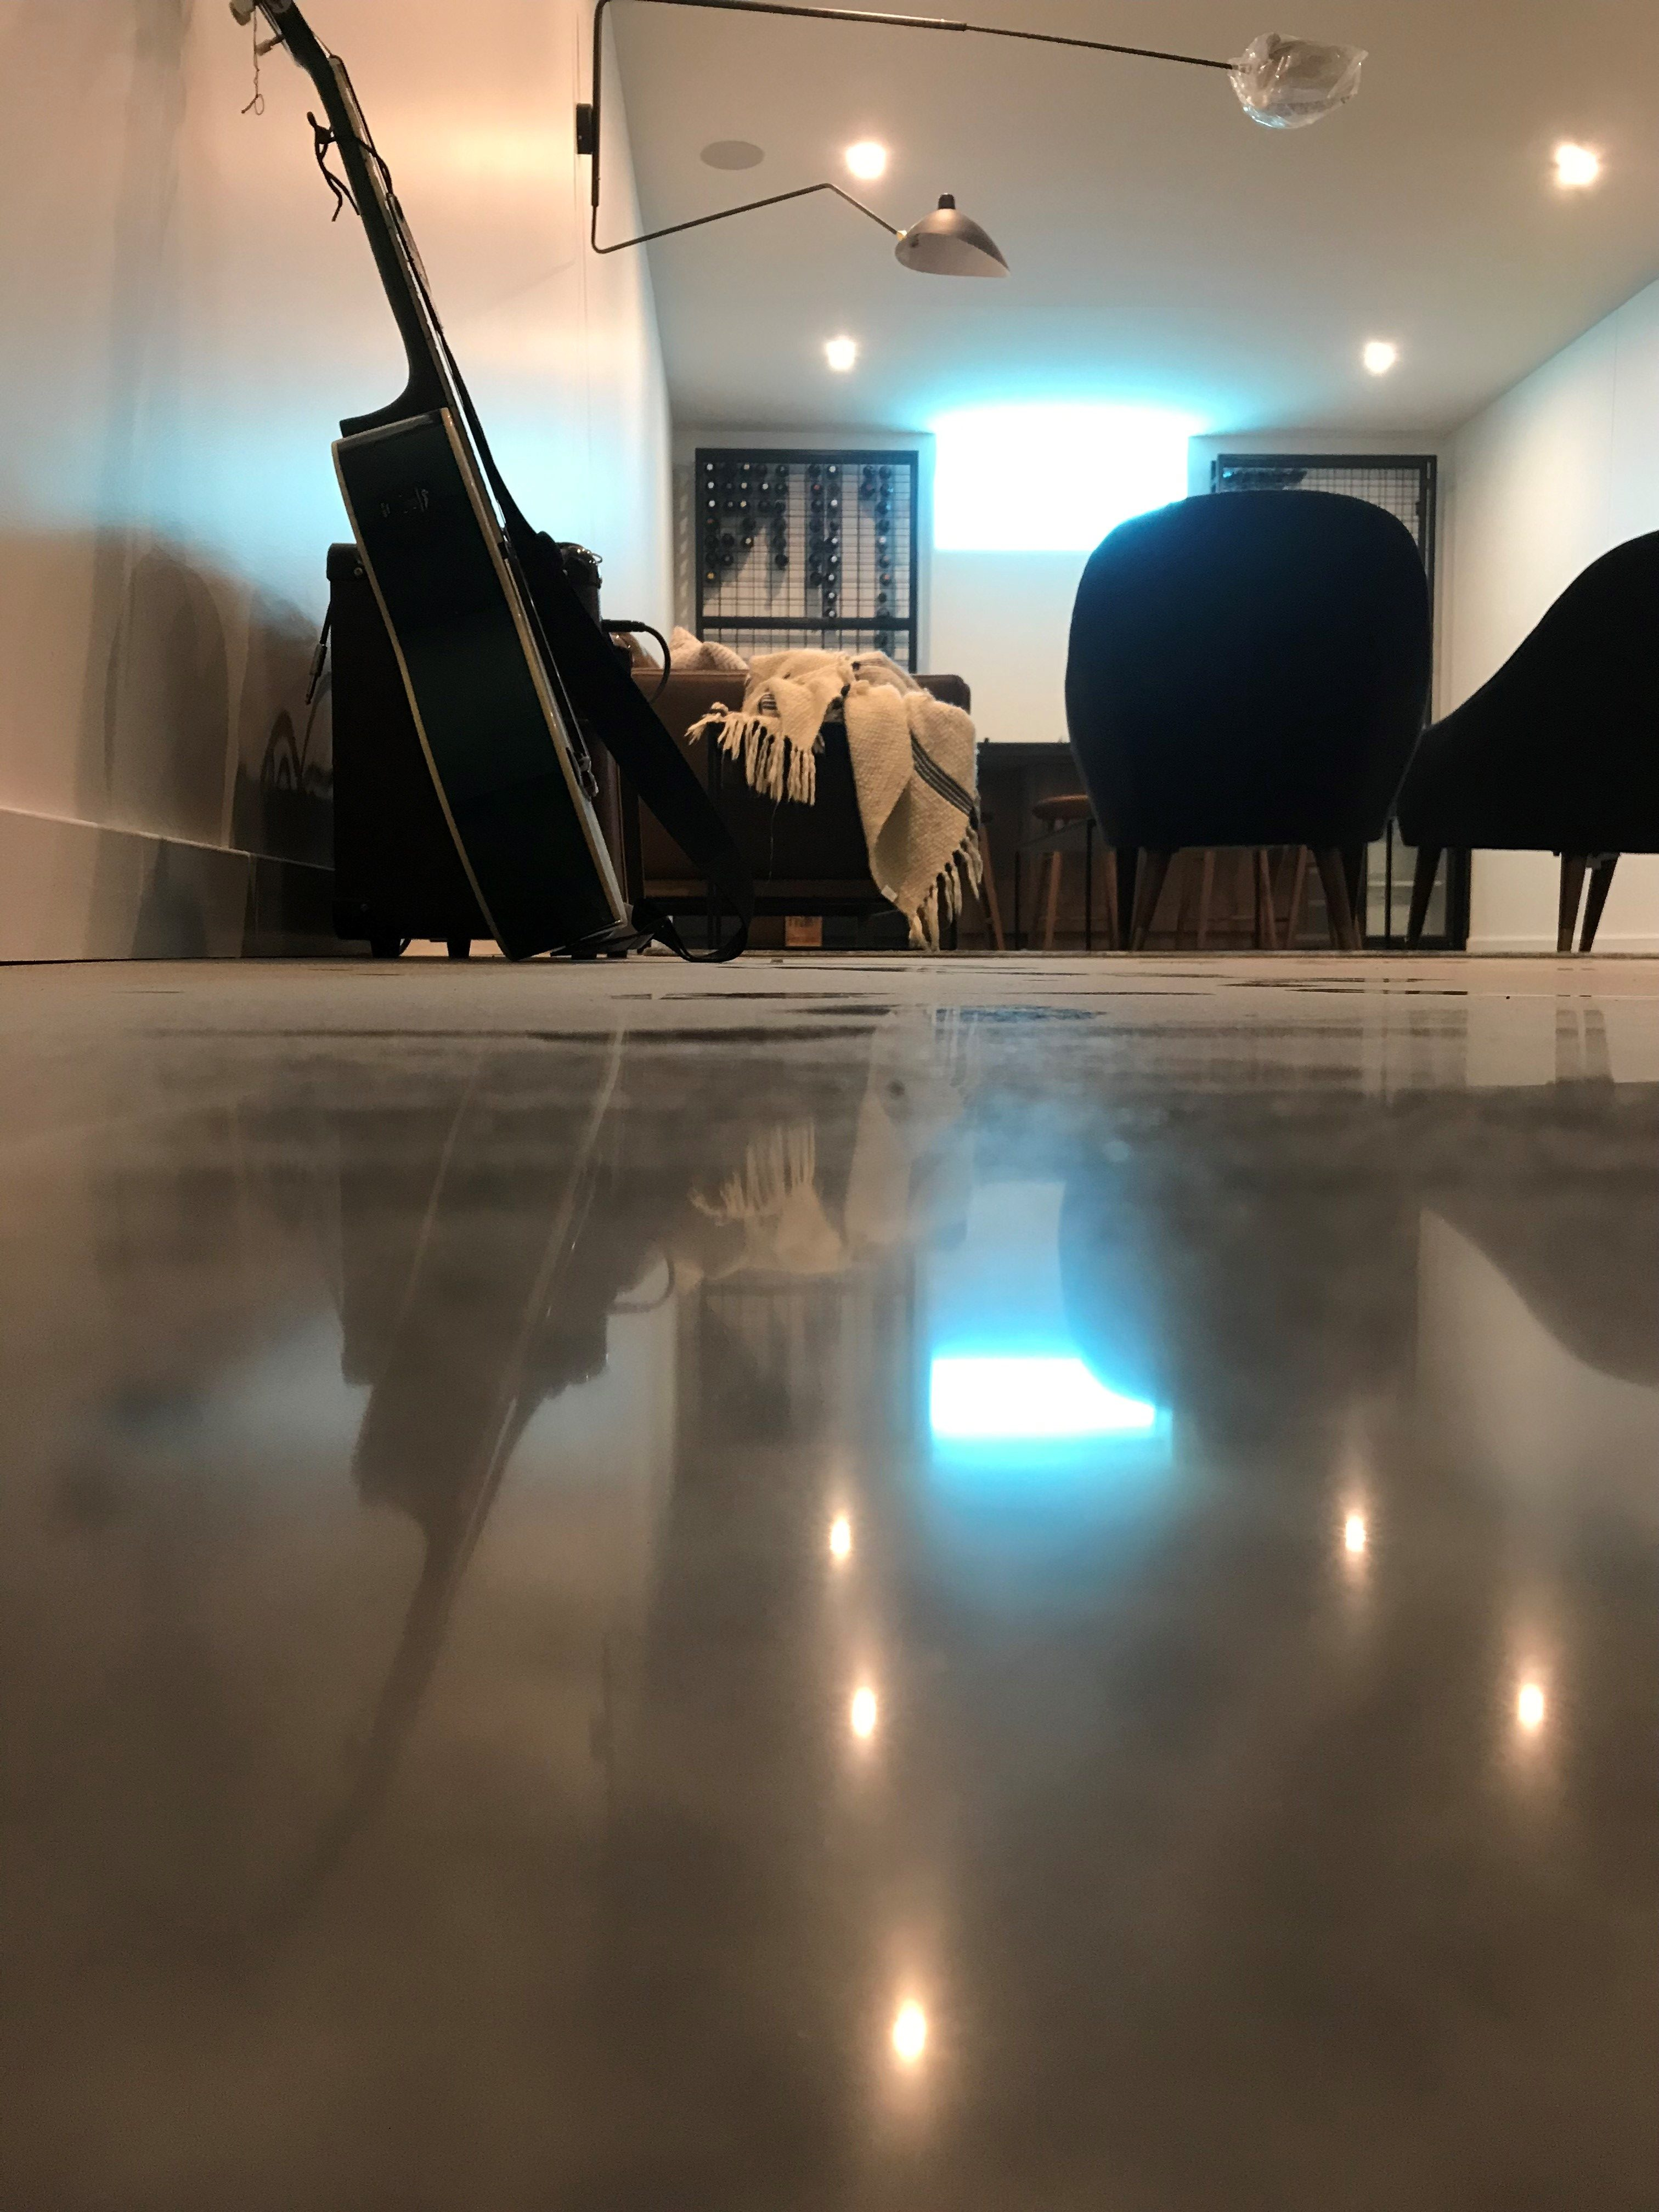 400 grit Pyrafloor Polished Concrete, Residential polish C2 Ultraseal